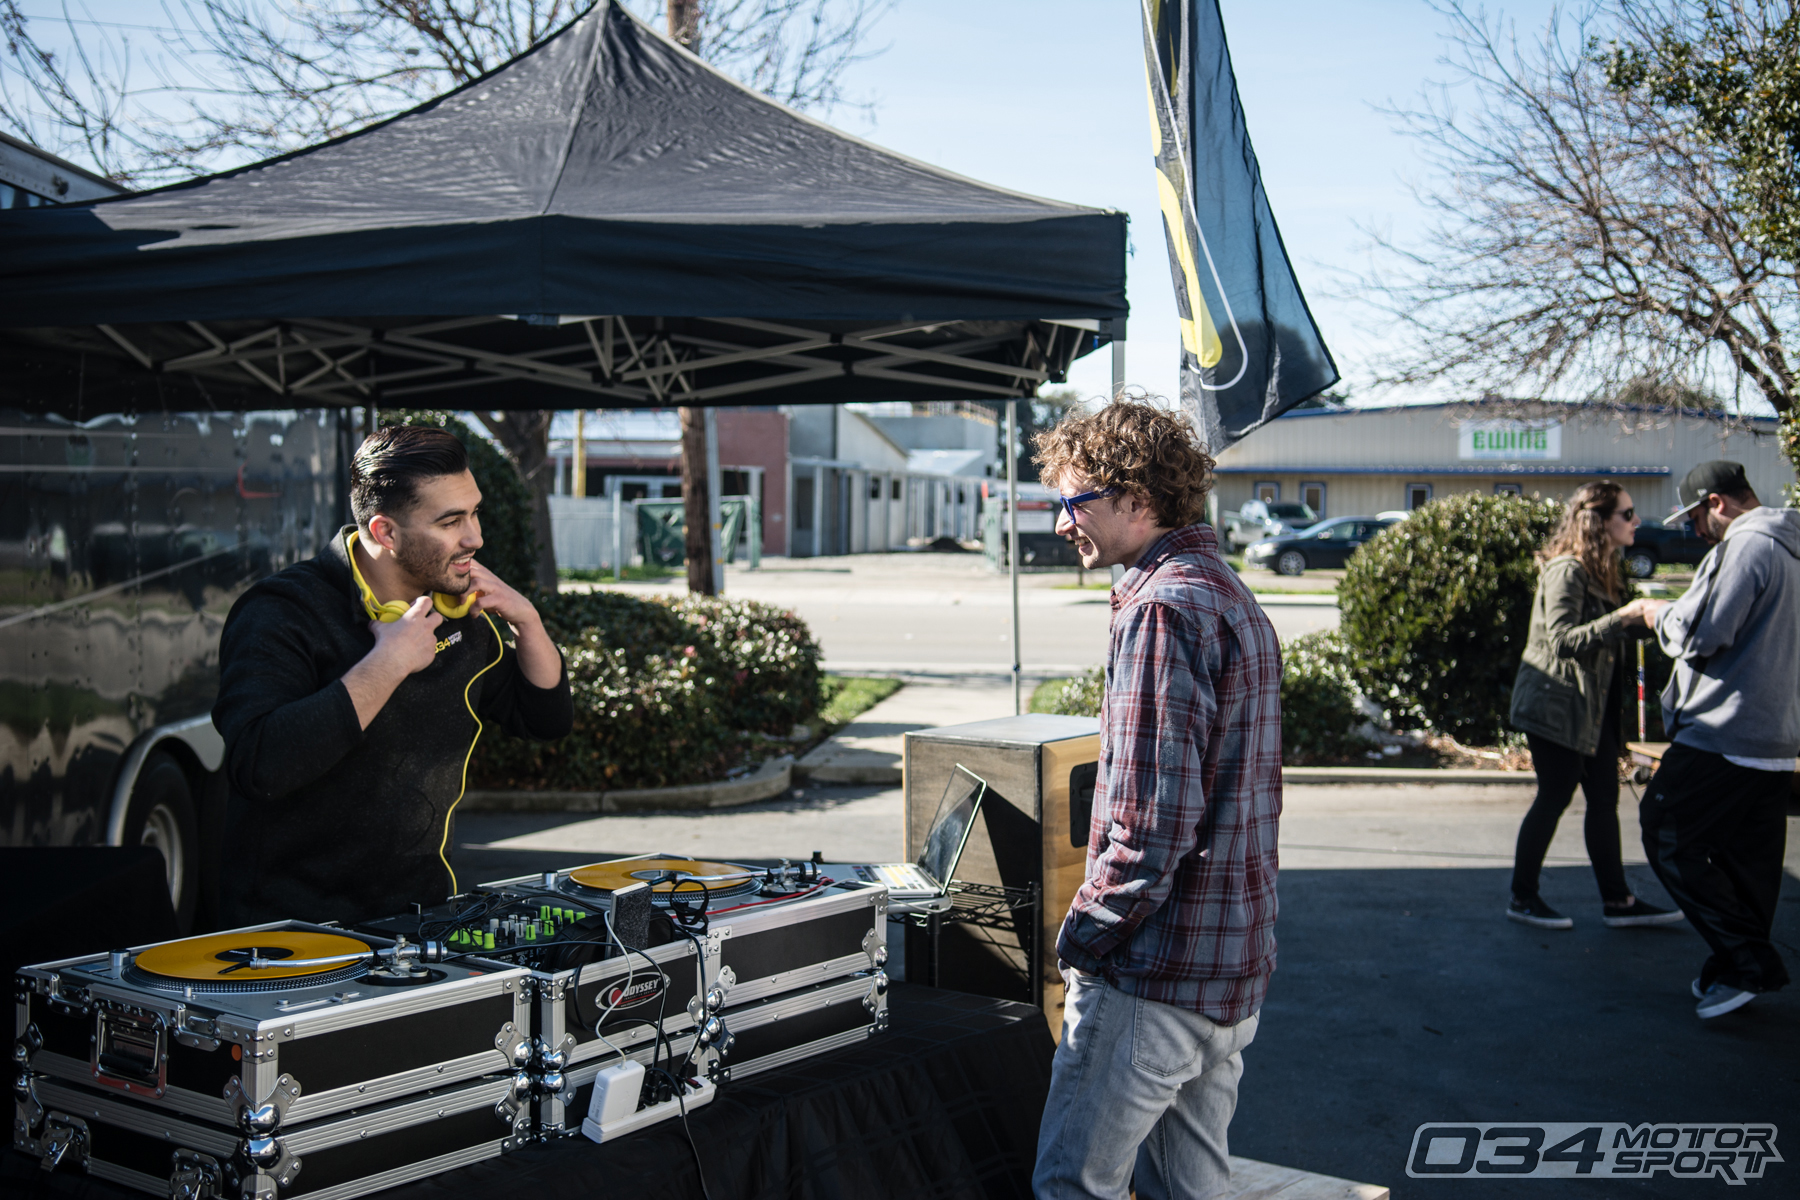 DeeJayJRL sets up music at 034Motorsport WinterFest 2018 Open House